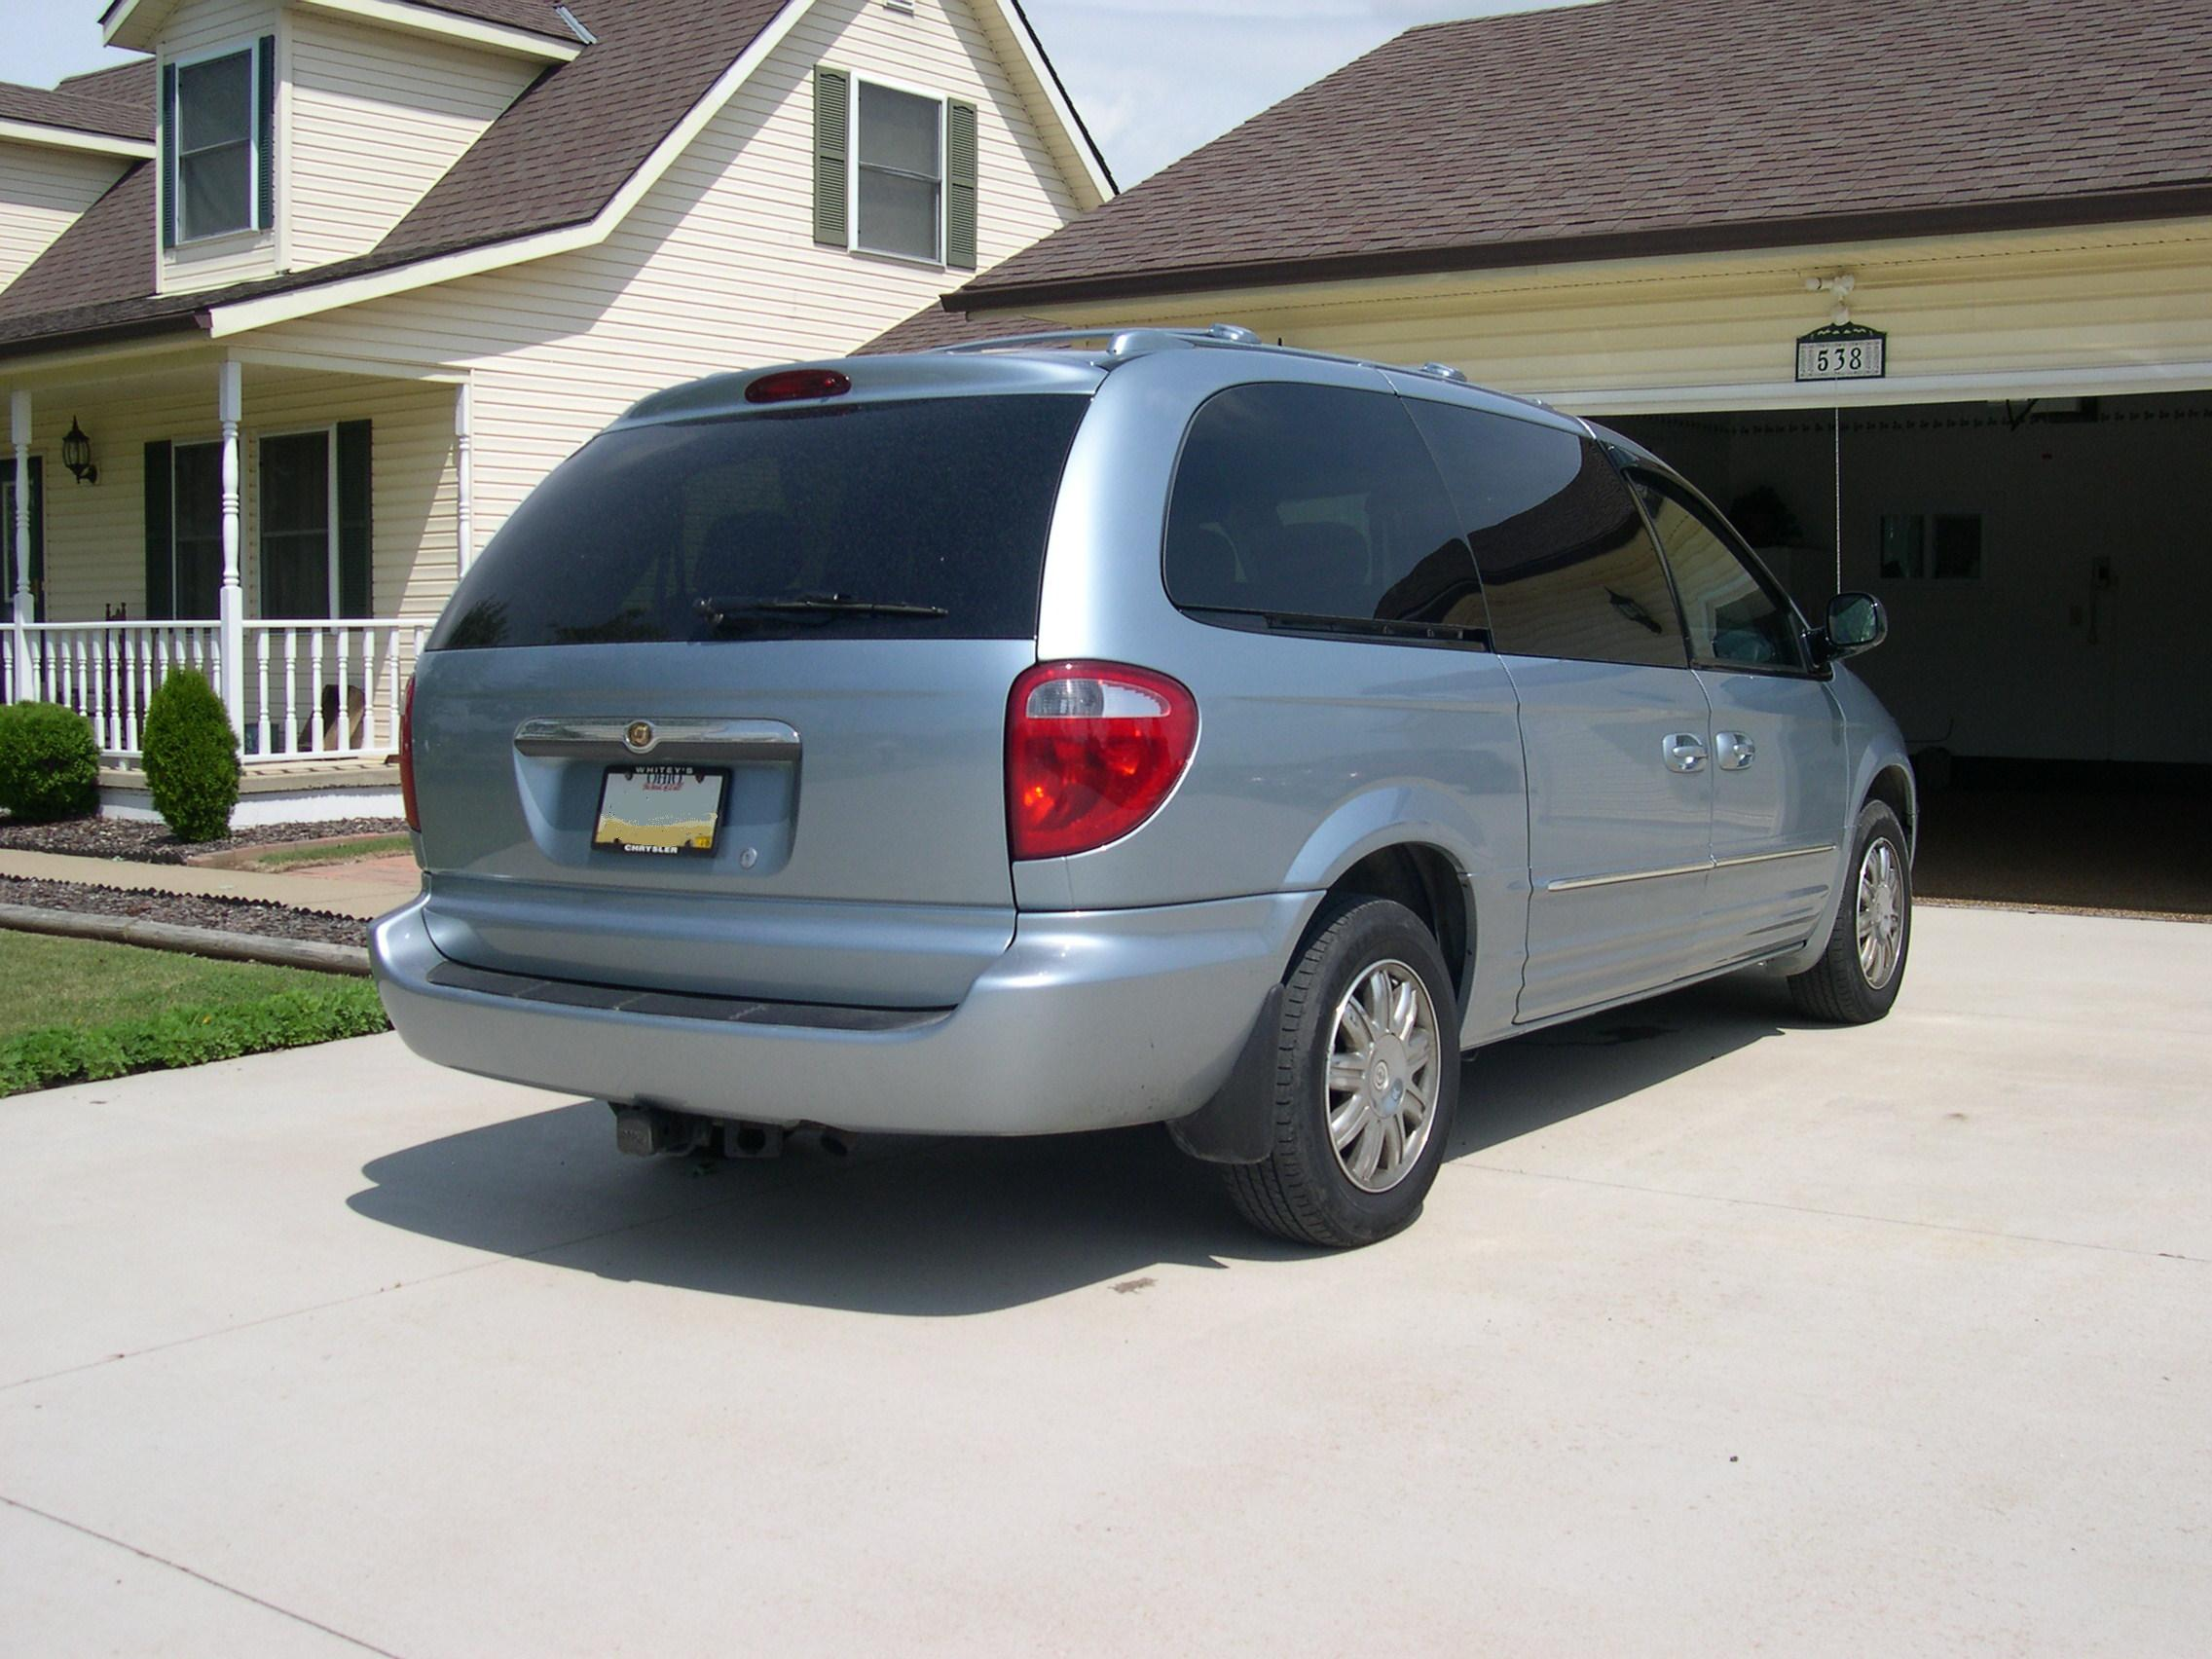 file 2004 chrysler town and country rear wikimedia commons. Black Bedroom Furniture Sets. Home Design Ideas